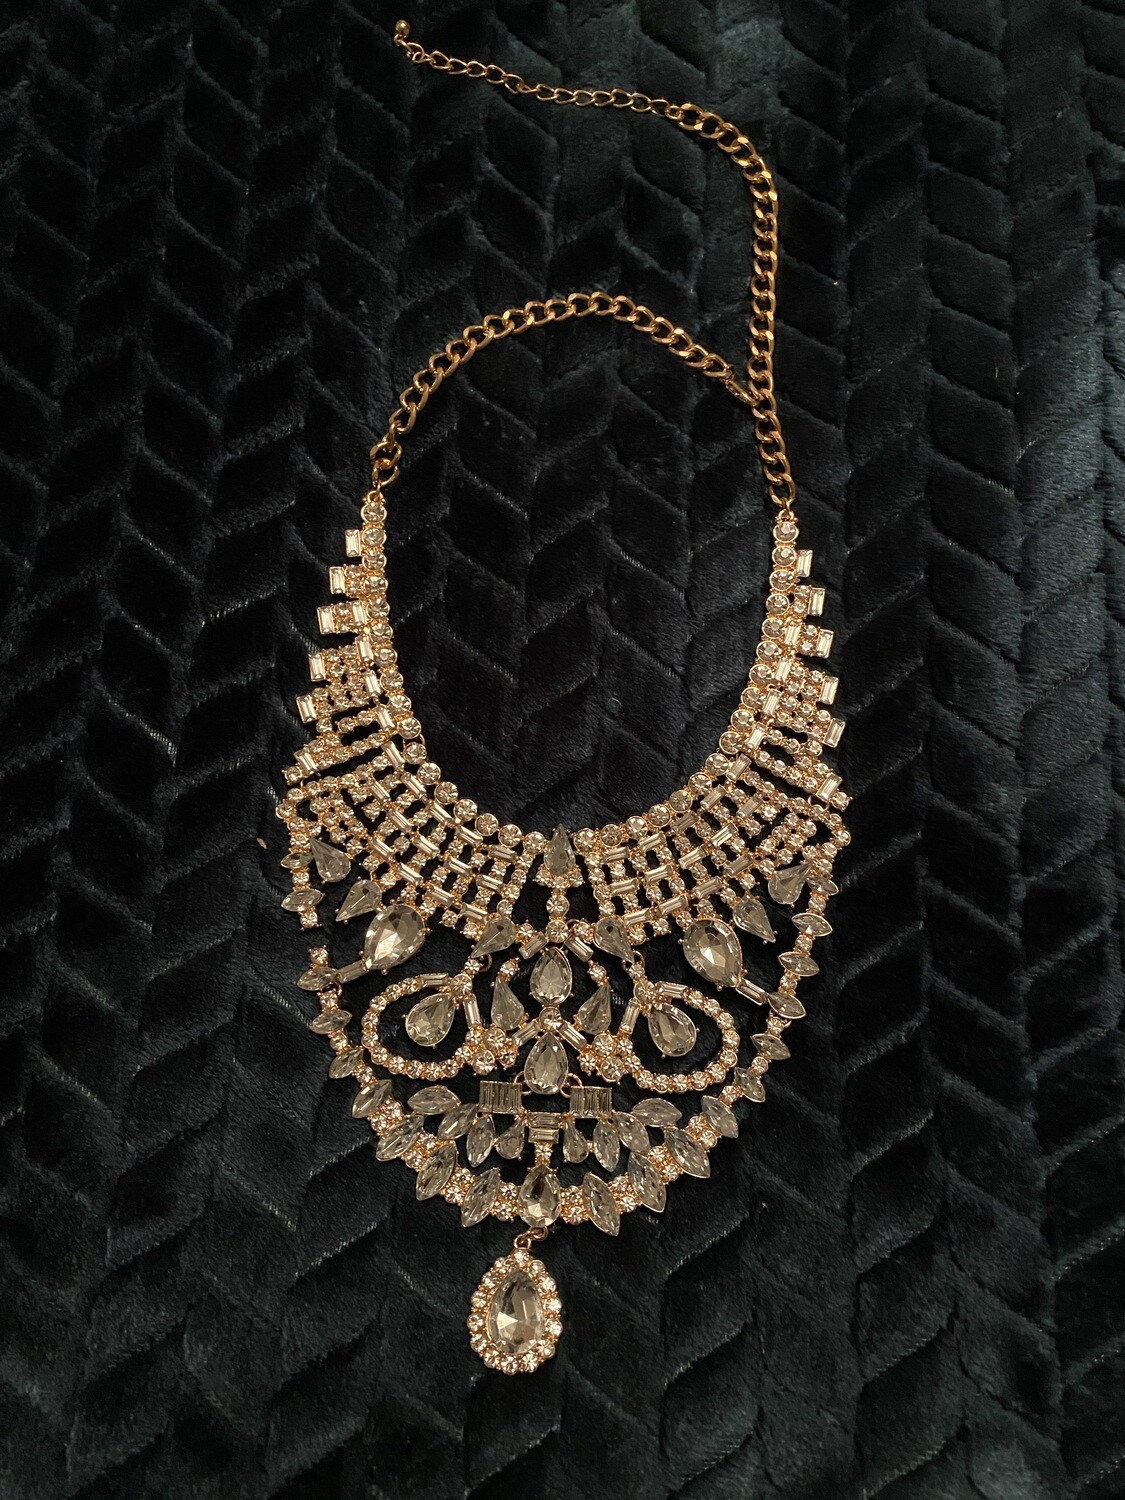 Crystal BIB Bling Necklace